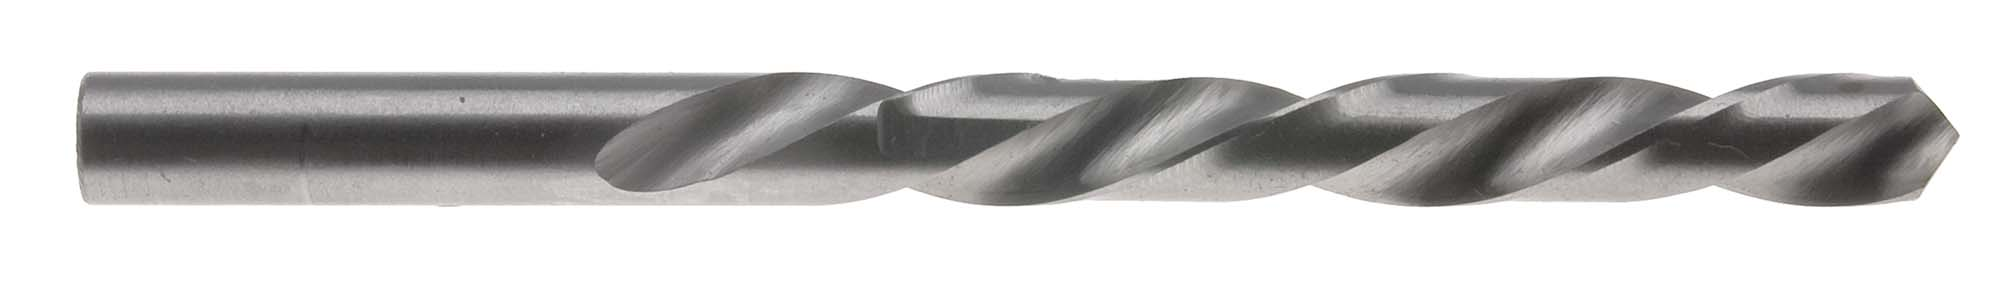 "B (.238"") Left Hand Jobber Length Drill Bit, High Speed Steel (Pack of 6)"